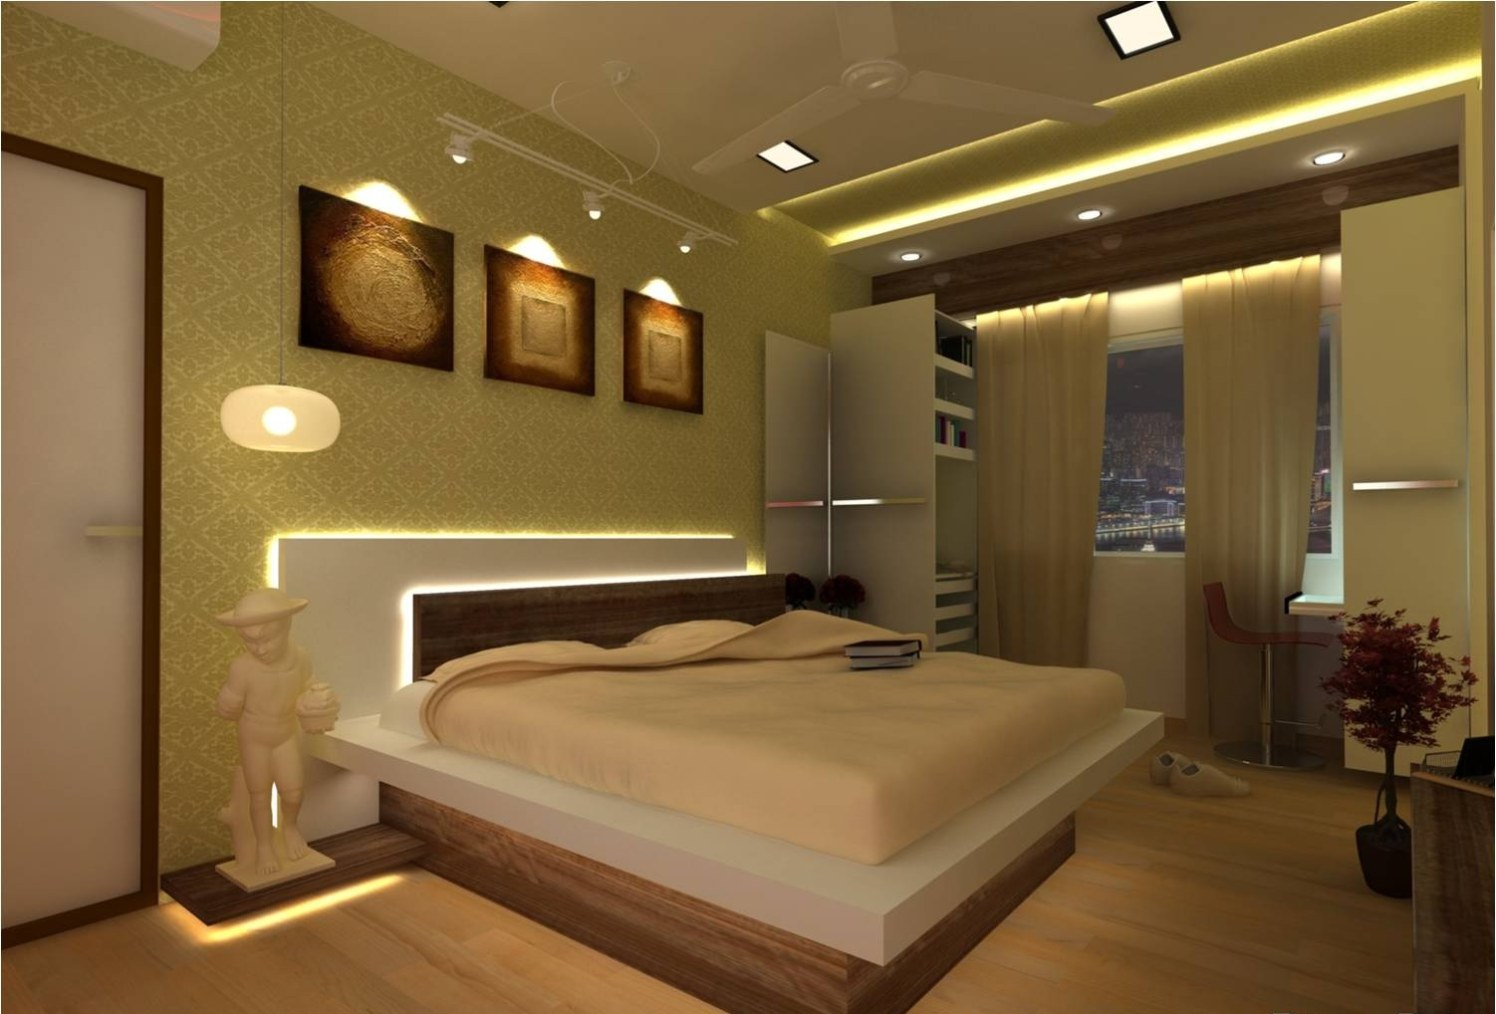 Beautifully Lit Bedroom! by Red Touch Interior & Retail Designers Bedroom Modern | Interior Design Photos & Ideas